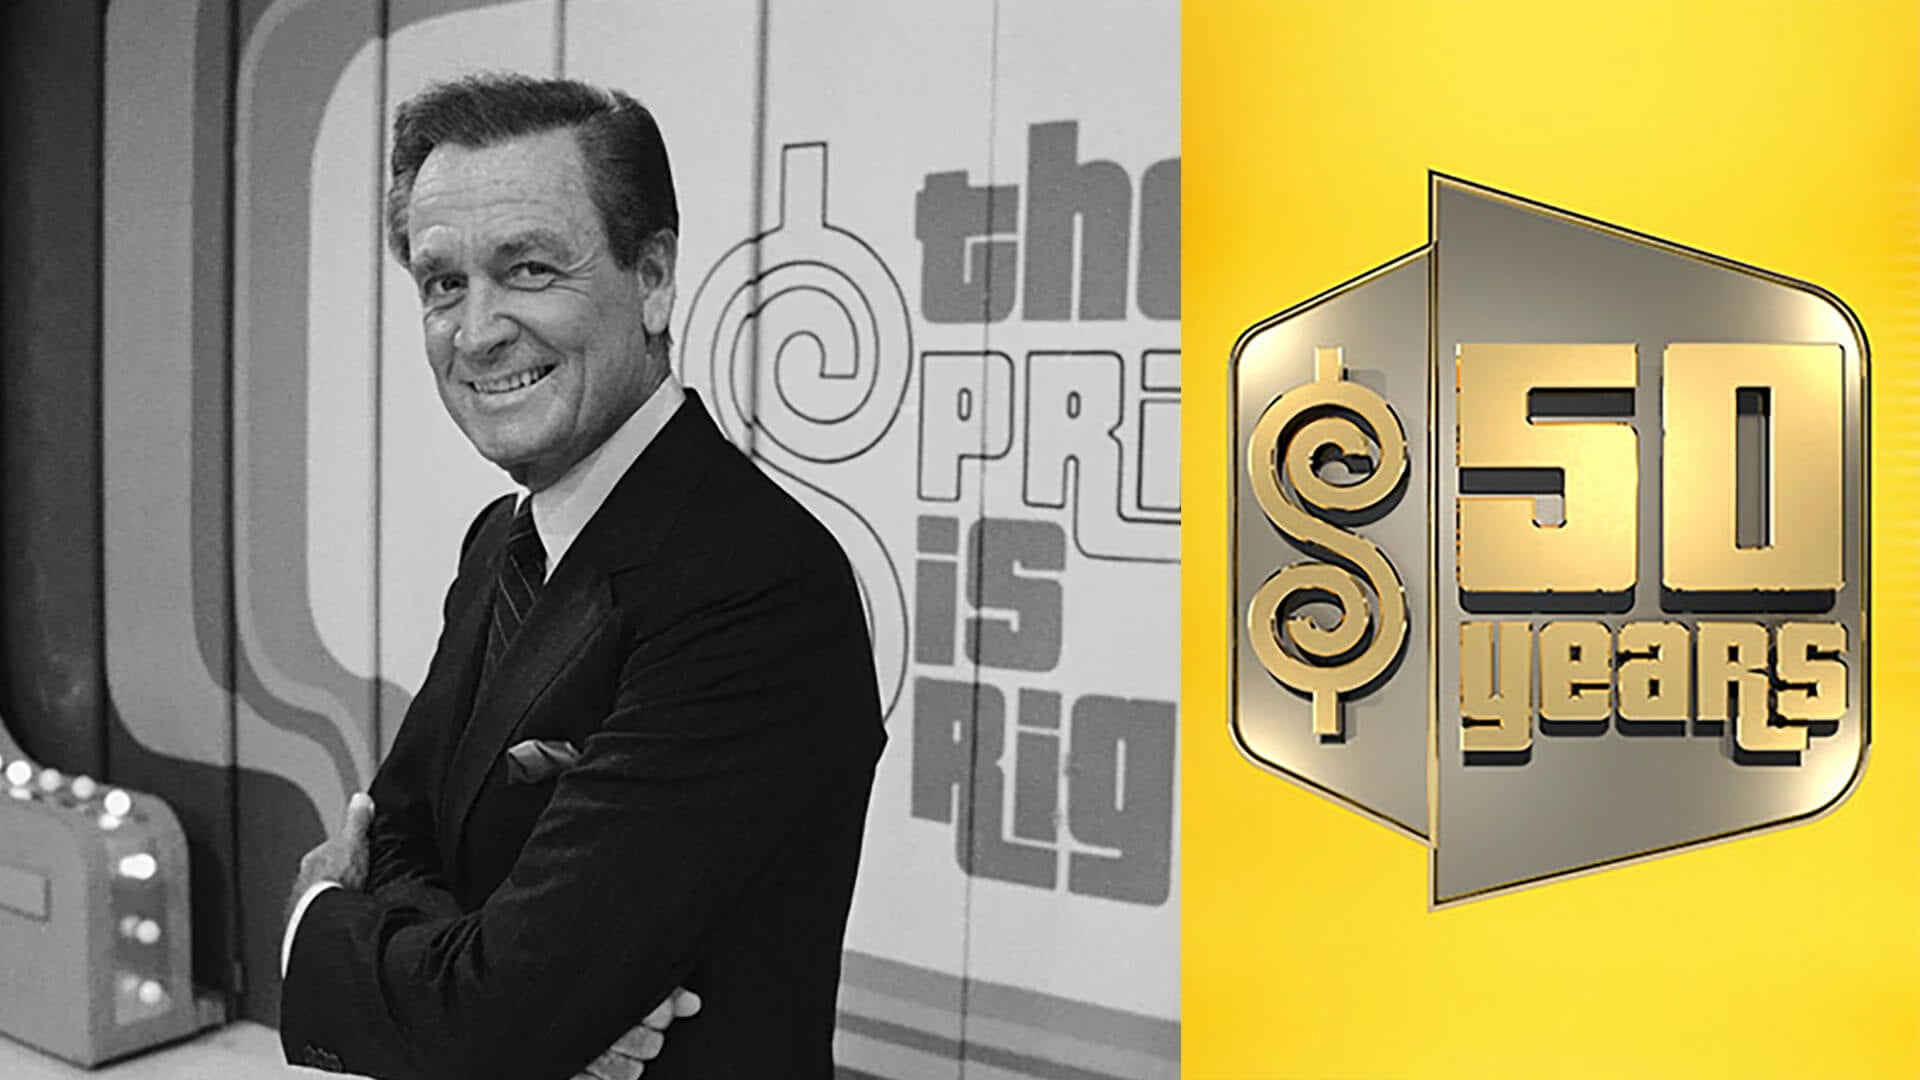 The Price is Right and Bob Barker for the 50th anniversary